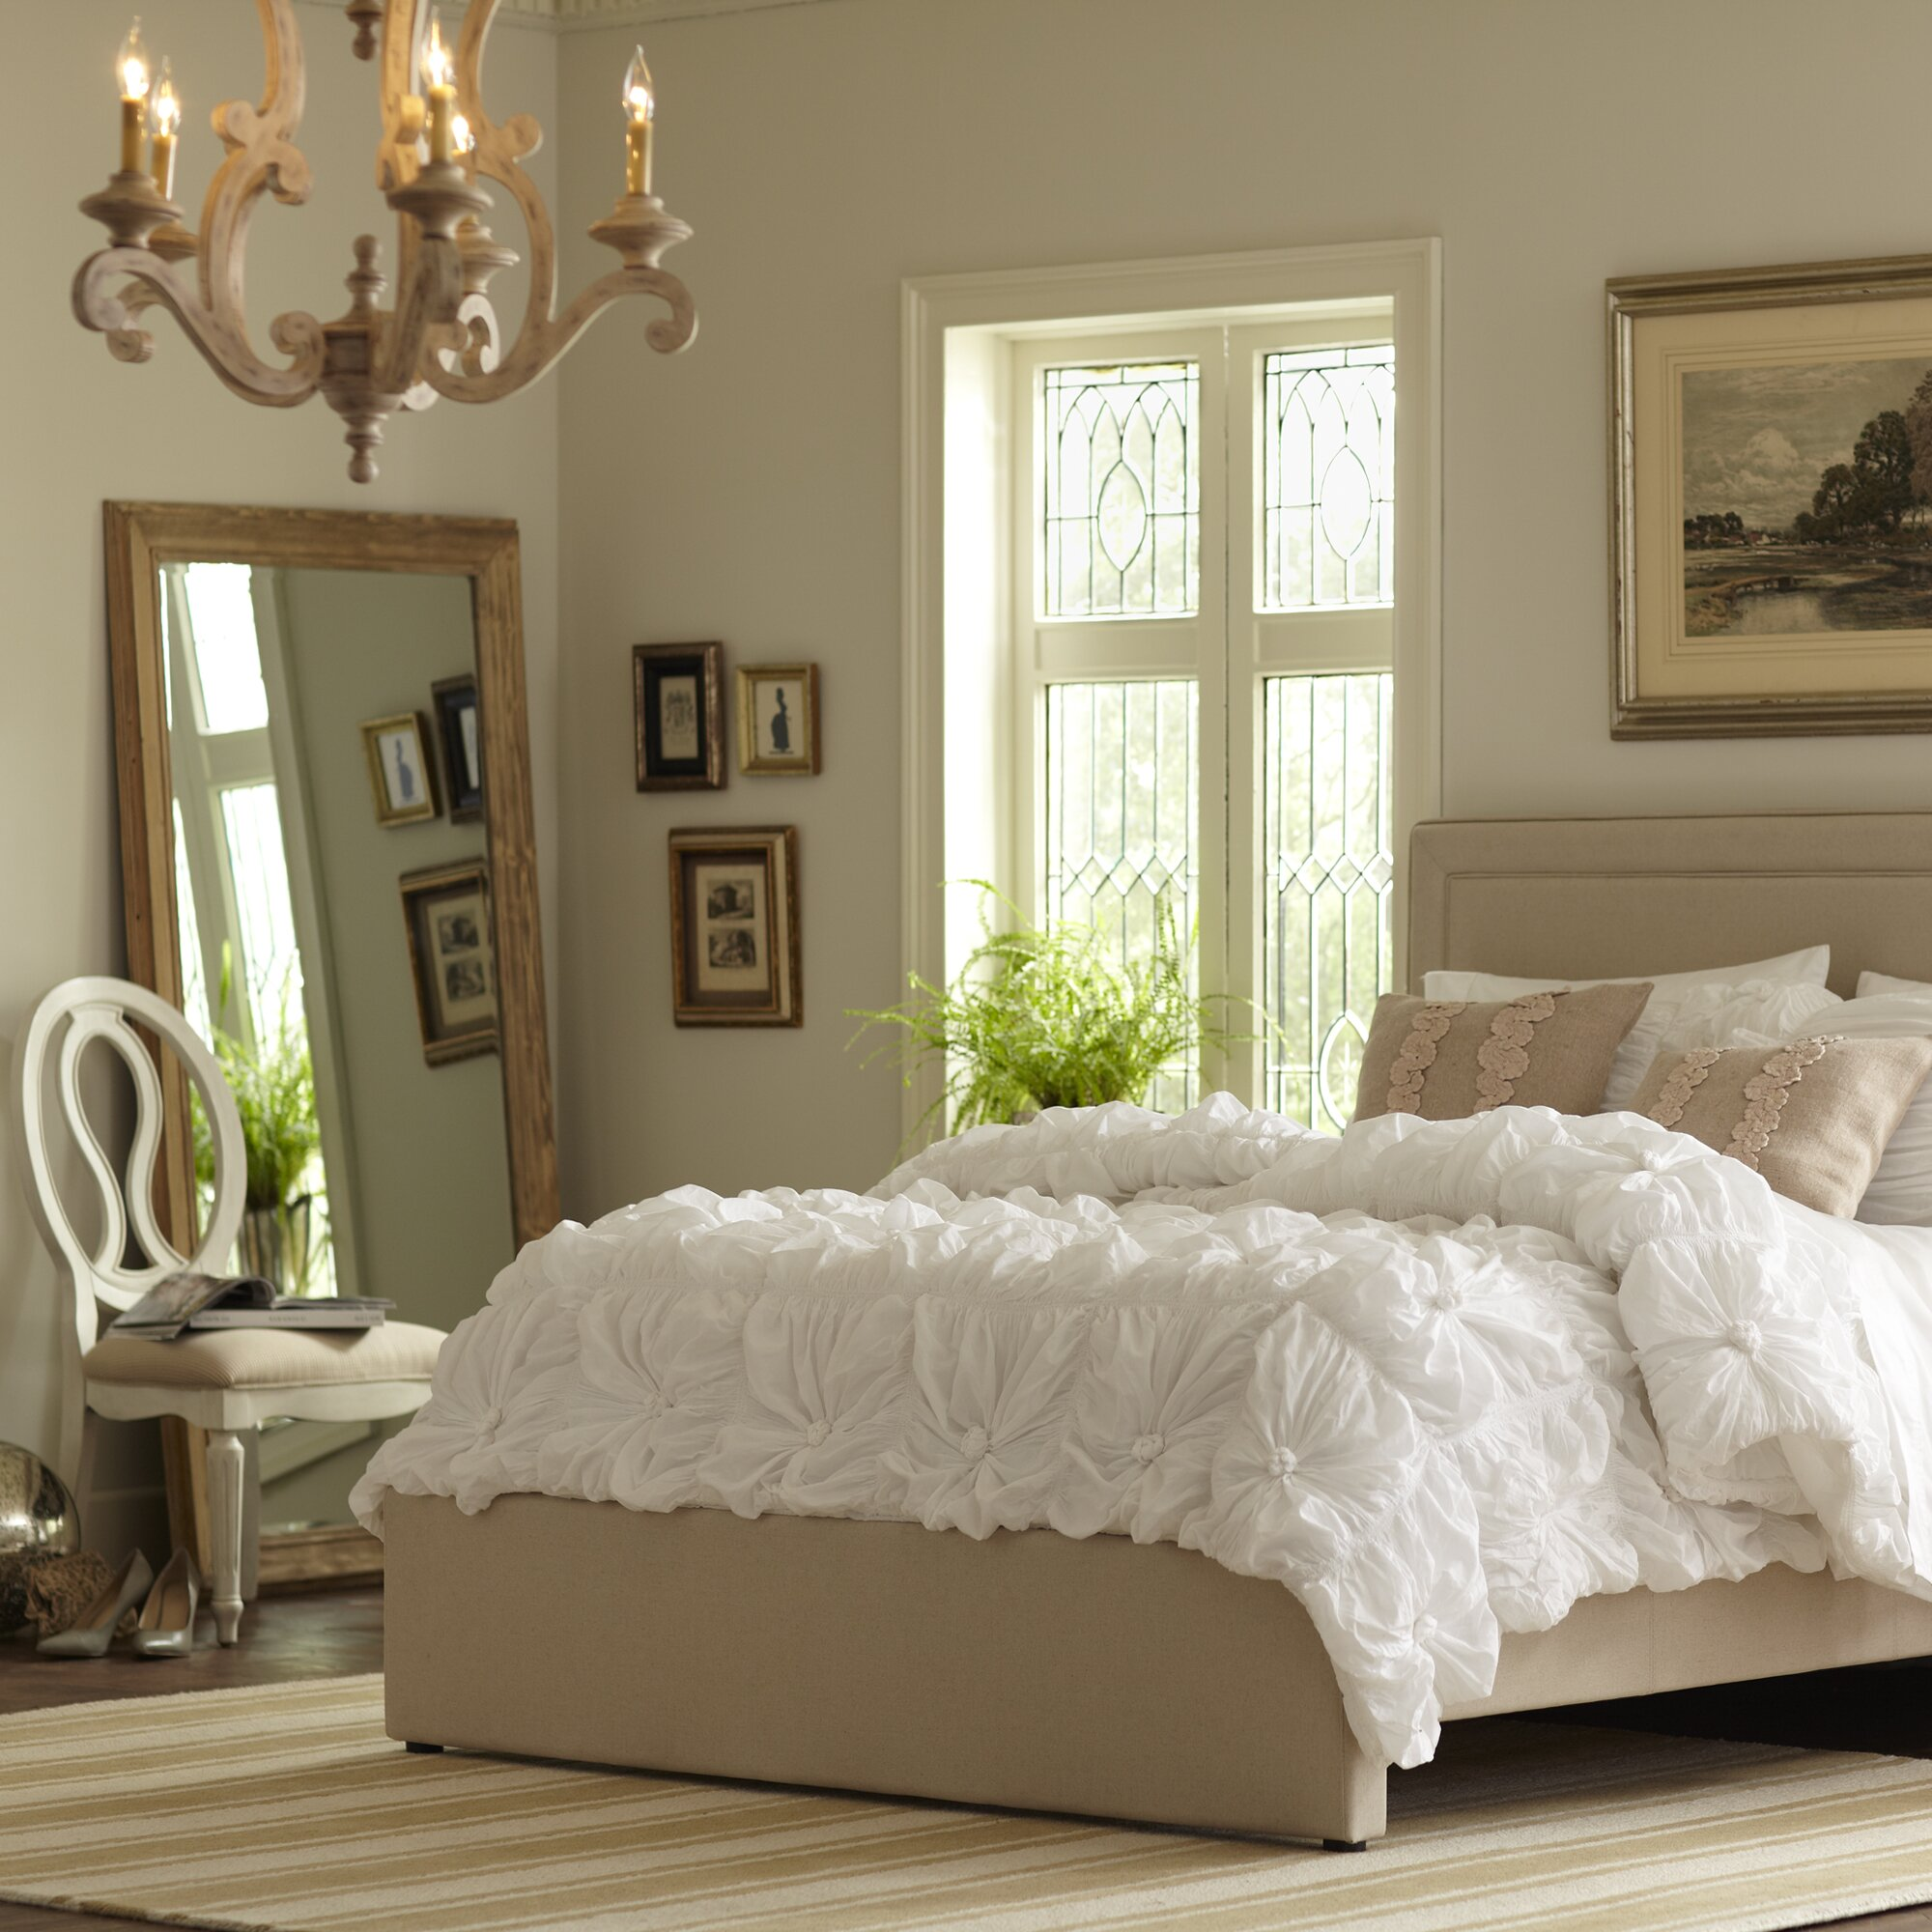 Side Chairs For Bedroom Bedrooms With Canopy Beds